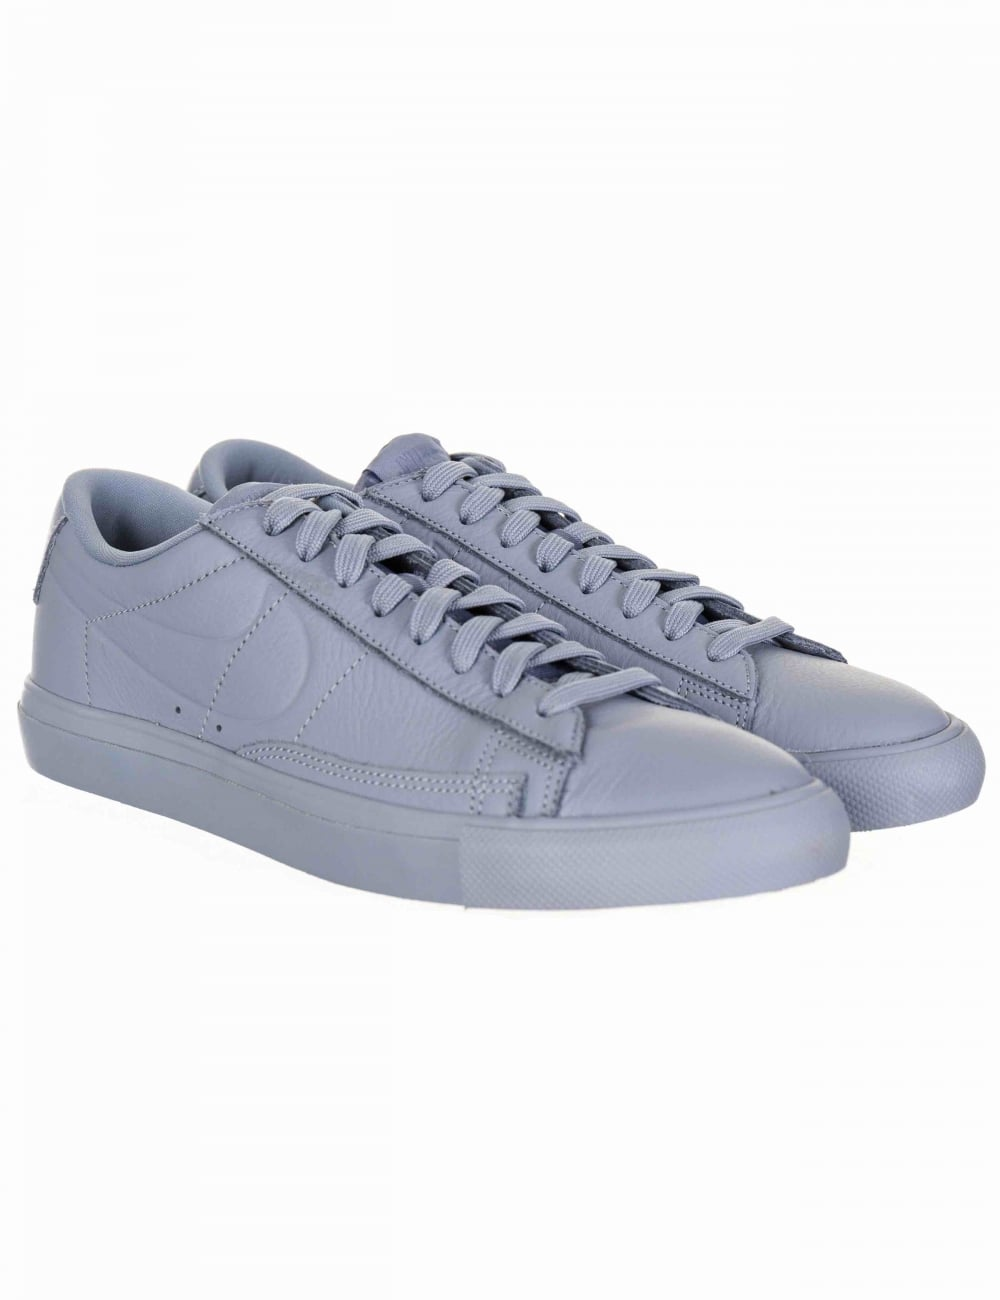 best service 2ce4e c6e62 Blazer Low Trainers - Glacier Grey